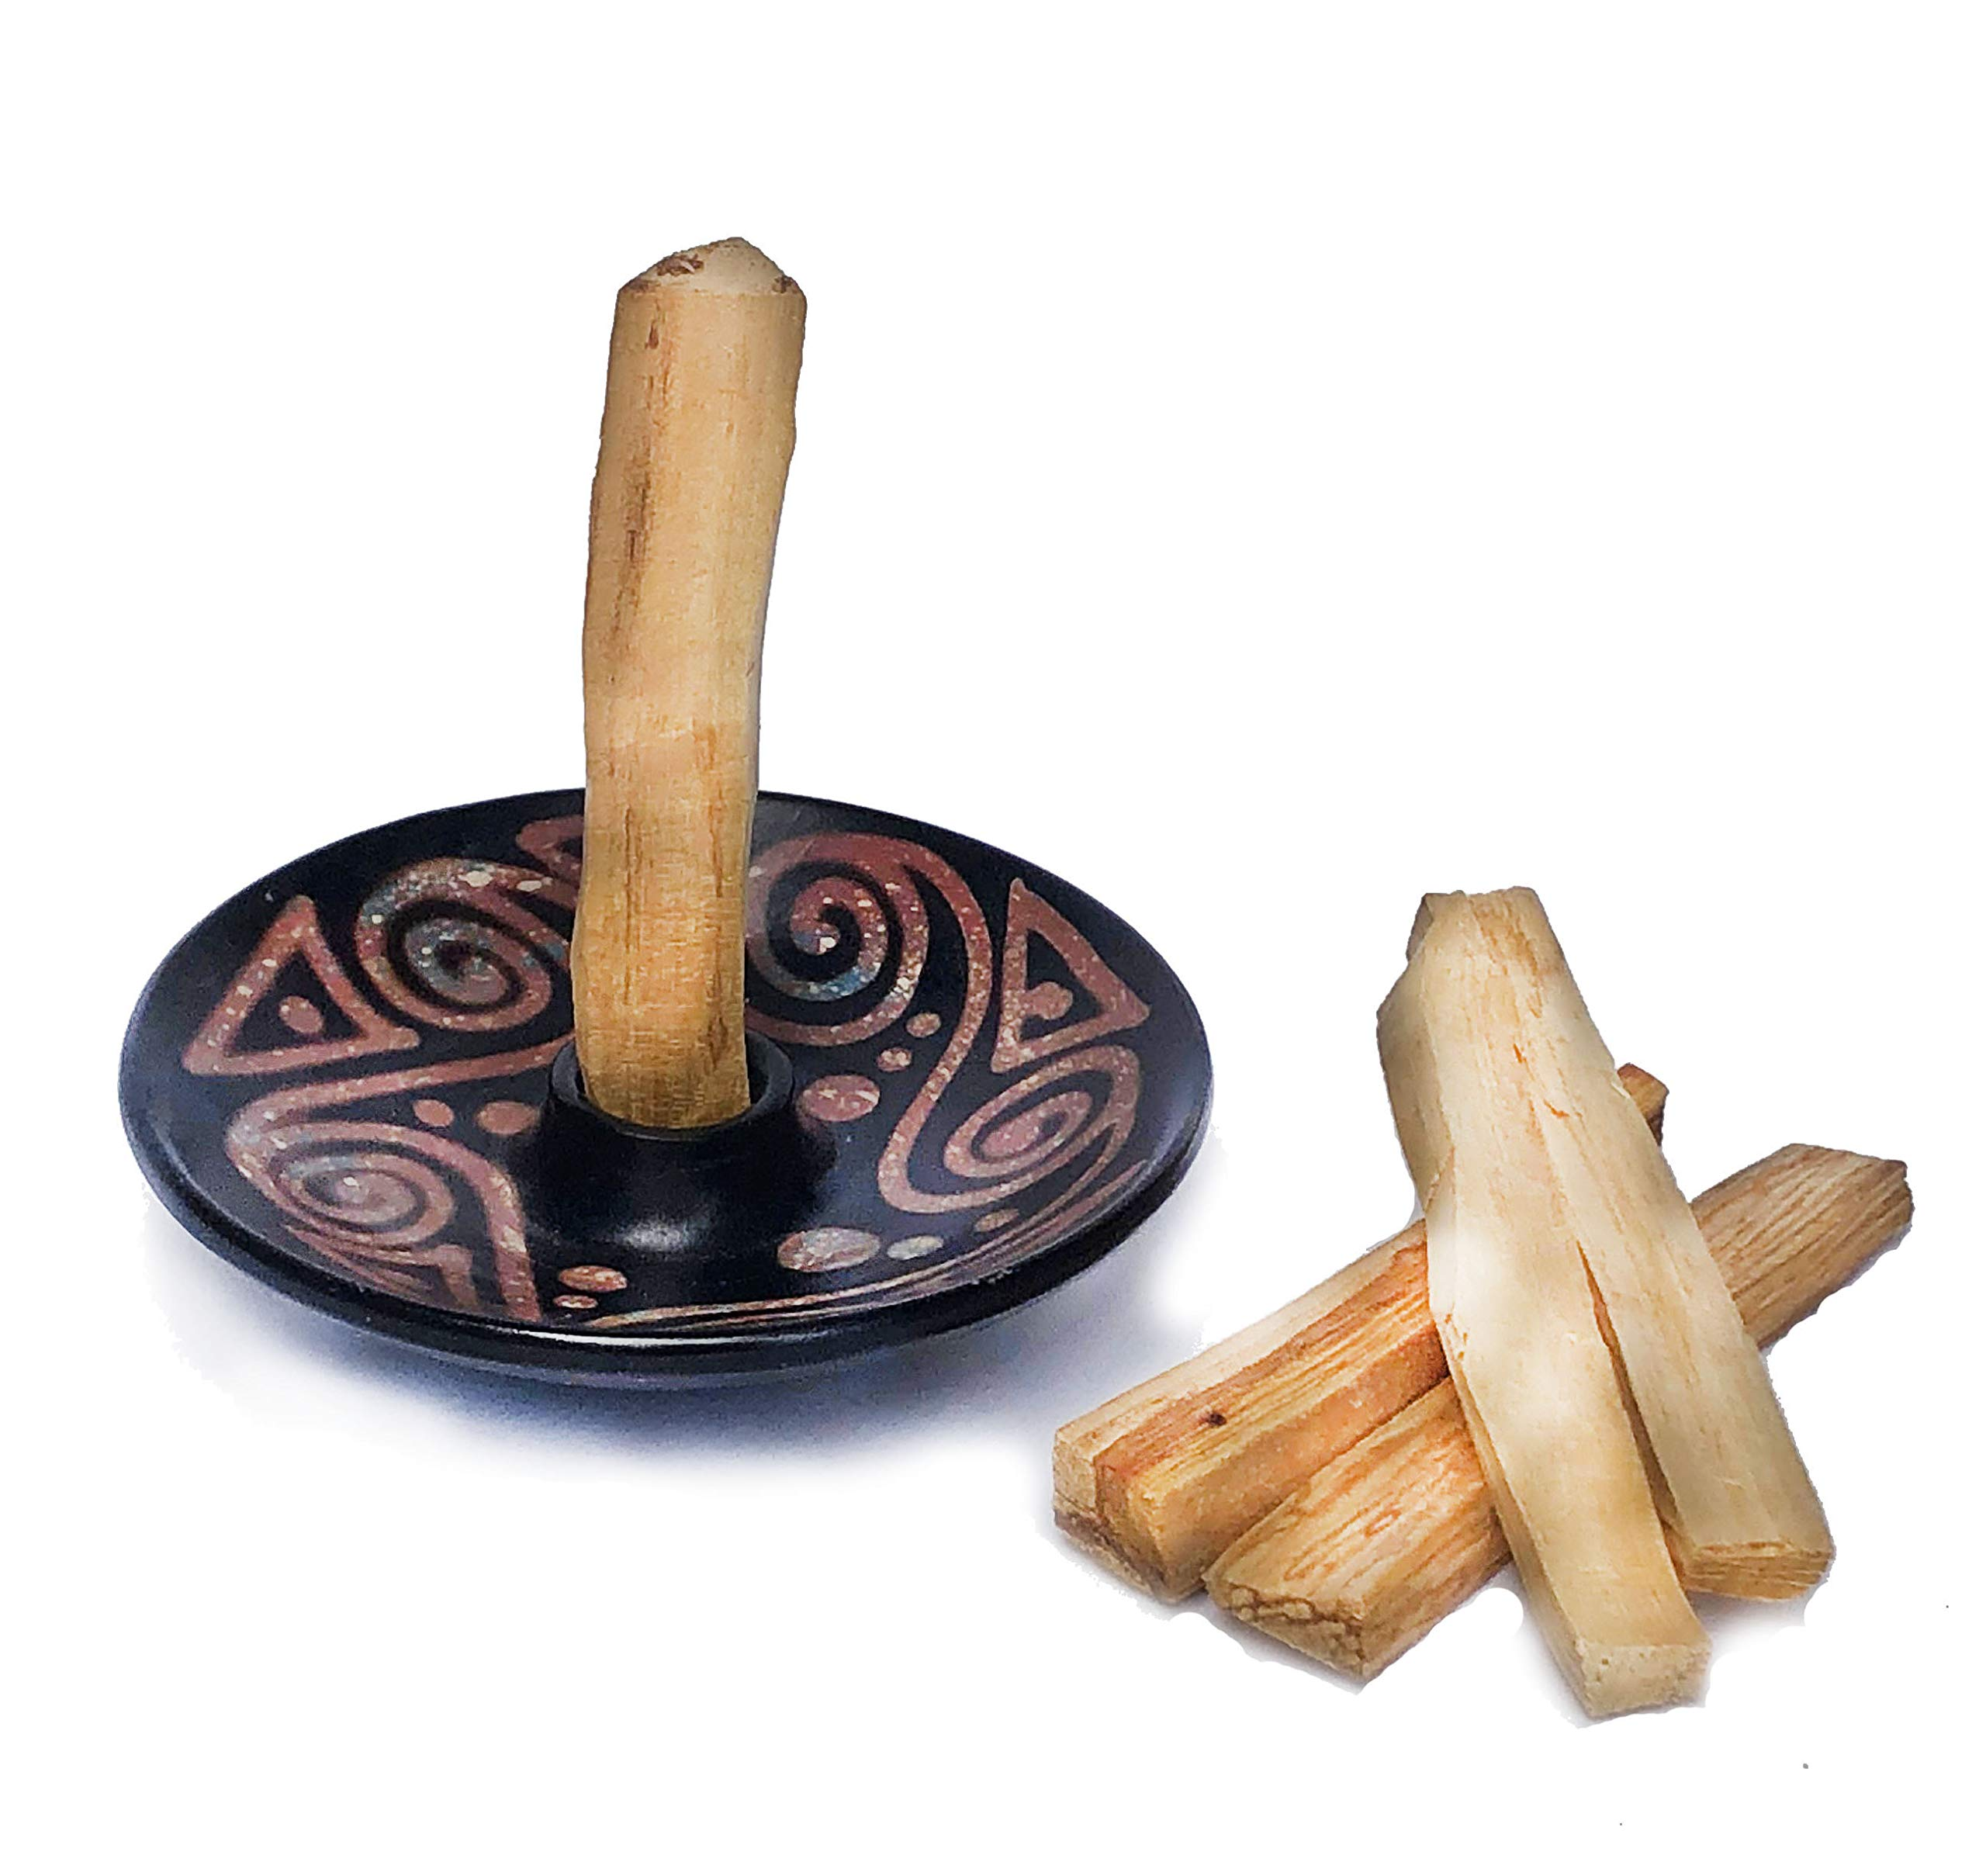 Blessed Ember Palo Santo Holder Handmade Andean Pottery from Chulucanas, Peru, 5 Palo Santo Sticks Included (Designs Vary)